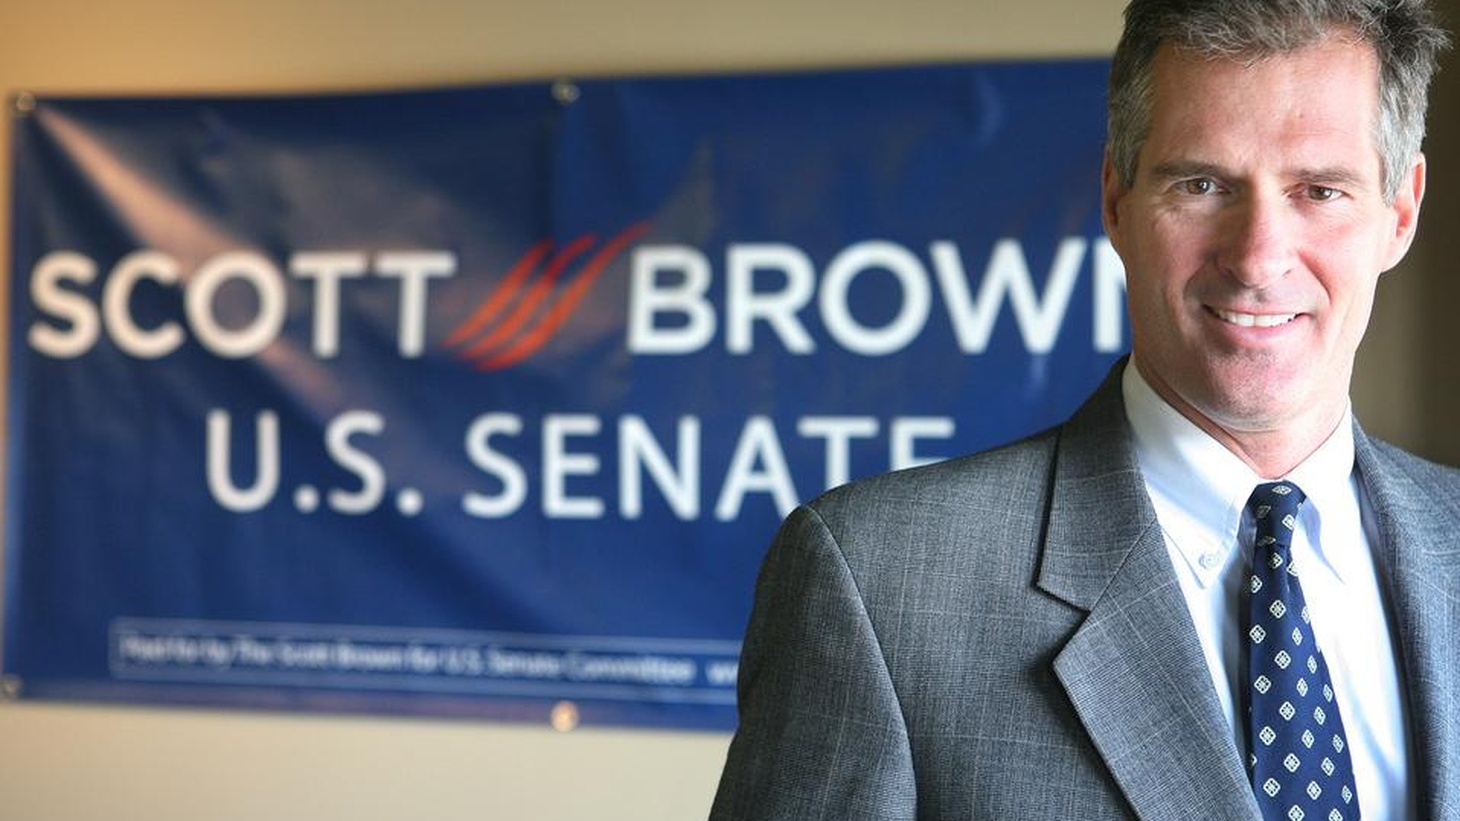 After Scott Brown's victory in Massachusetts, Senate Democrats can't stop Republican filibusters any more.  What does that mean for health care reform?  And what's the message for both parties for elections later this year? Also, is zero tolerance for terrorism an impossible goal?